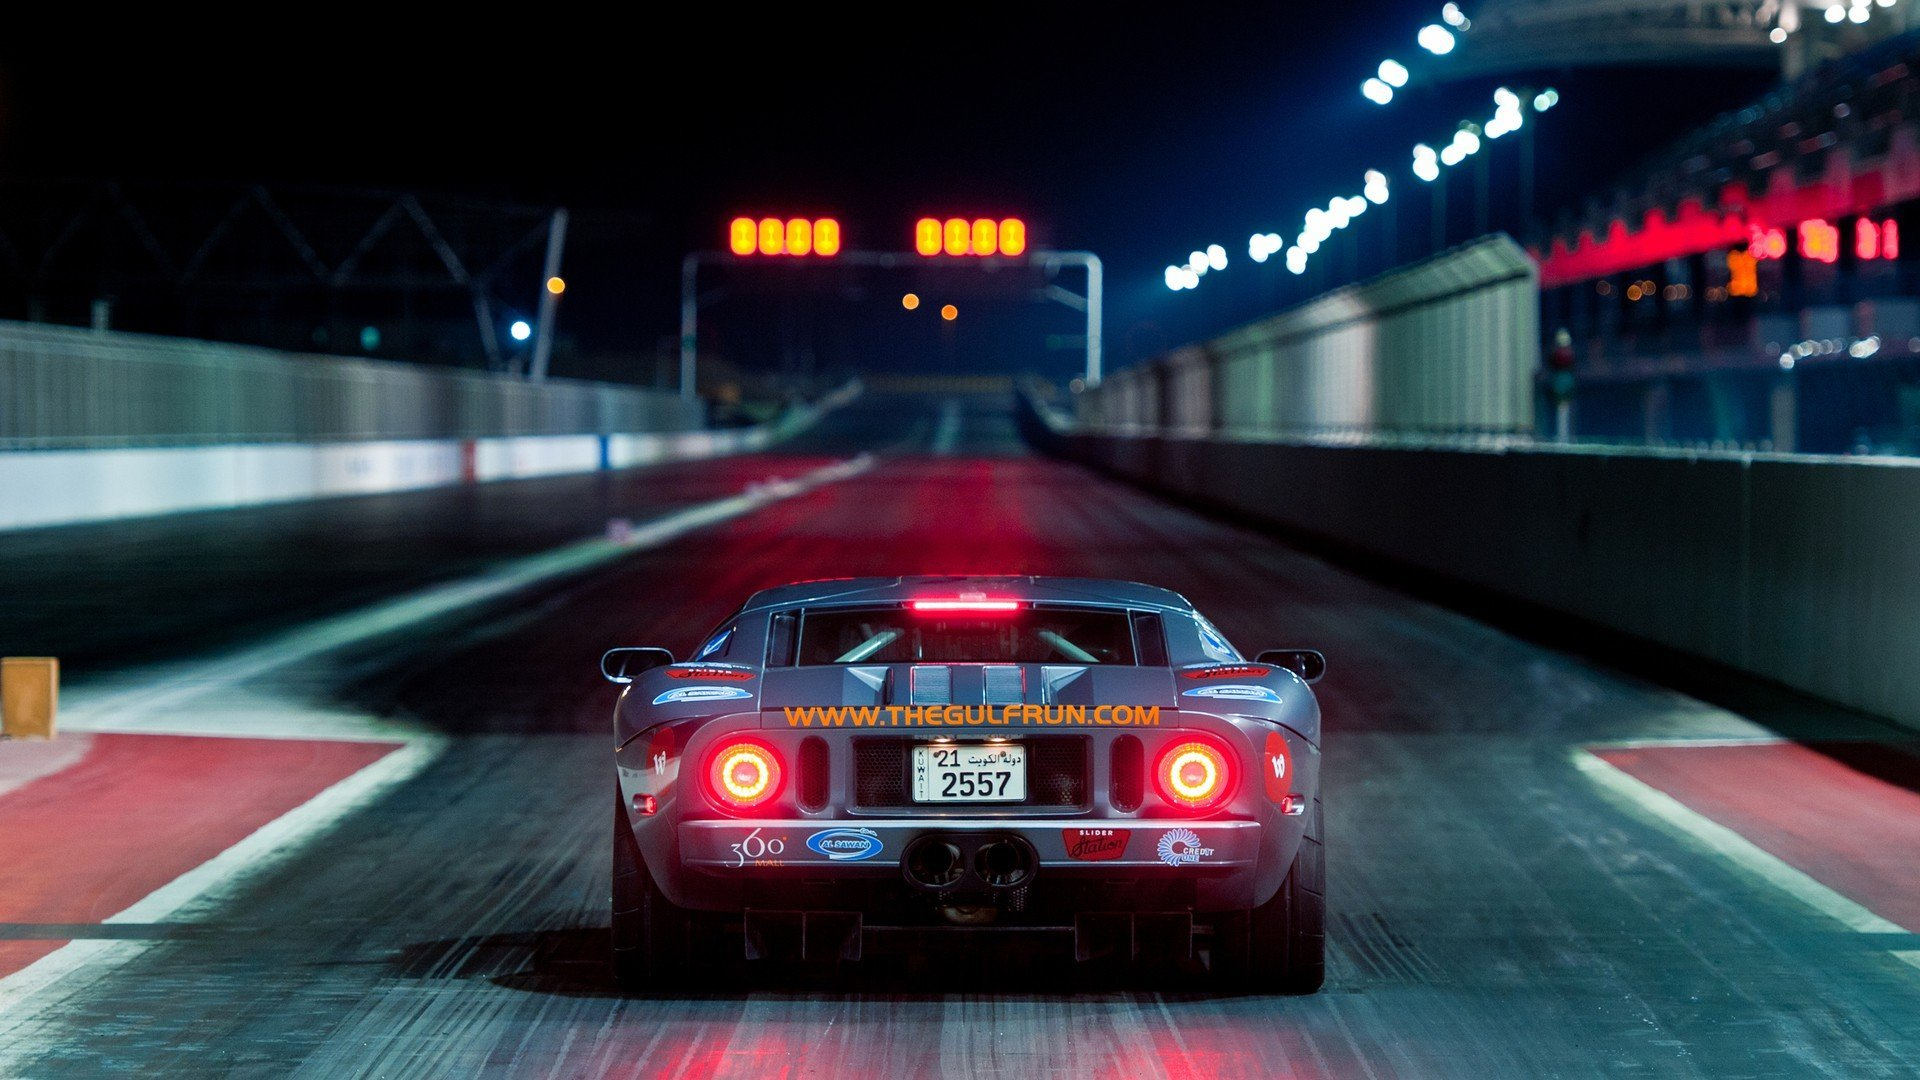 Racing Wallpapers Wallpapersafari